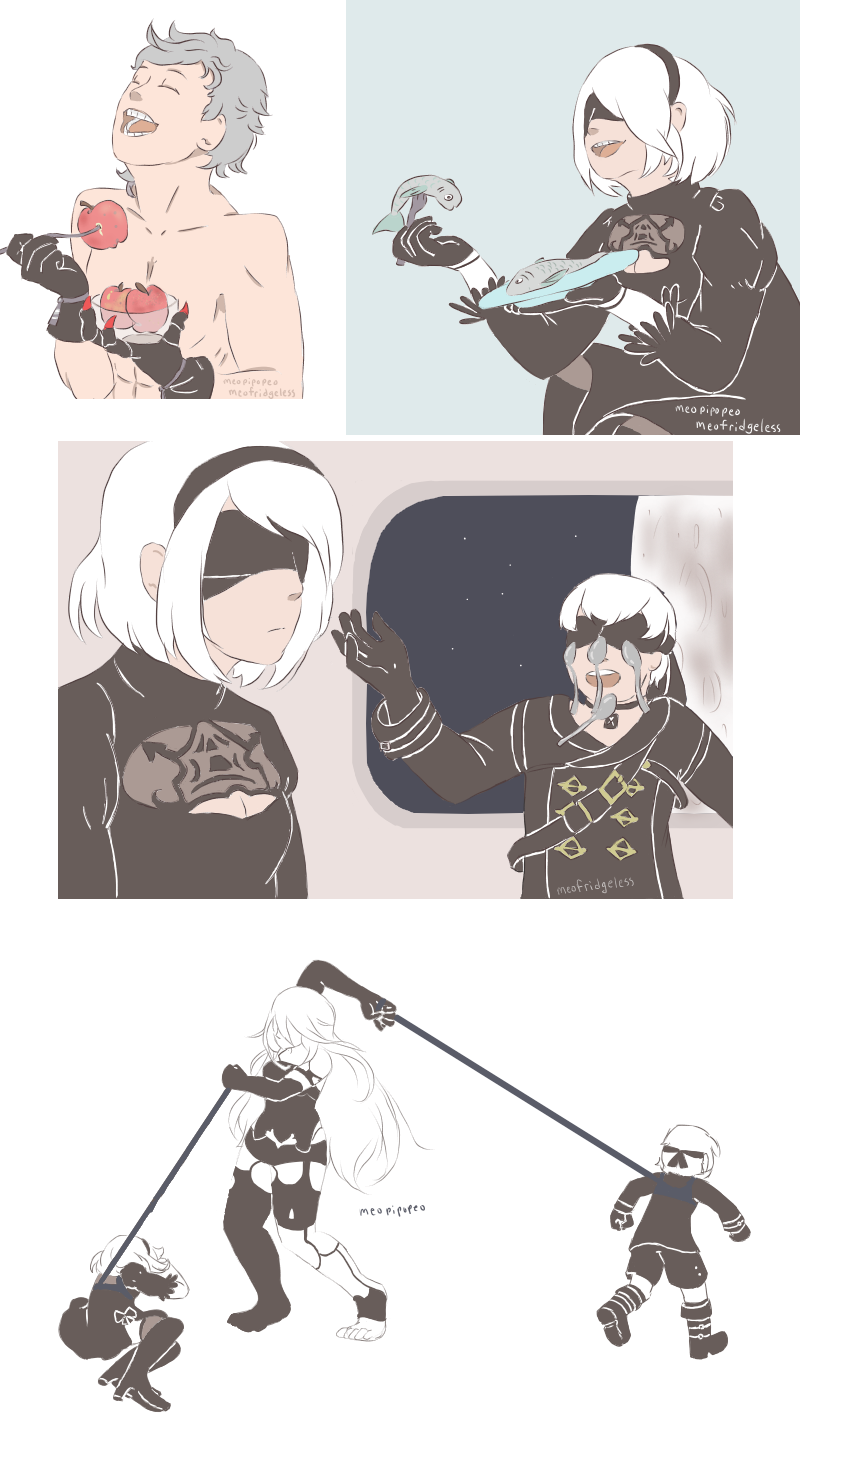 Nier Automata Meme Edition By Meopipopeo On Deviantart